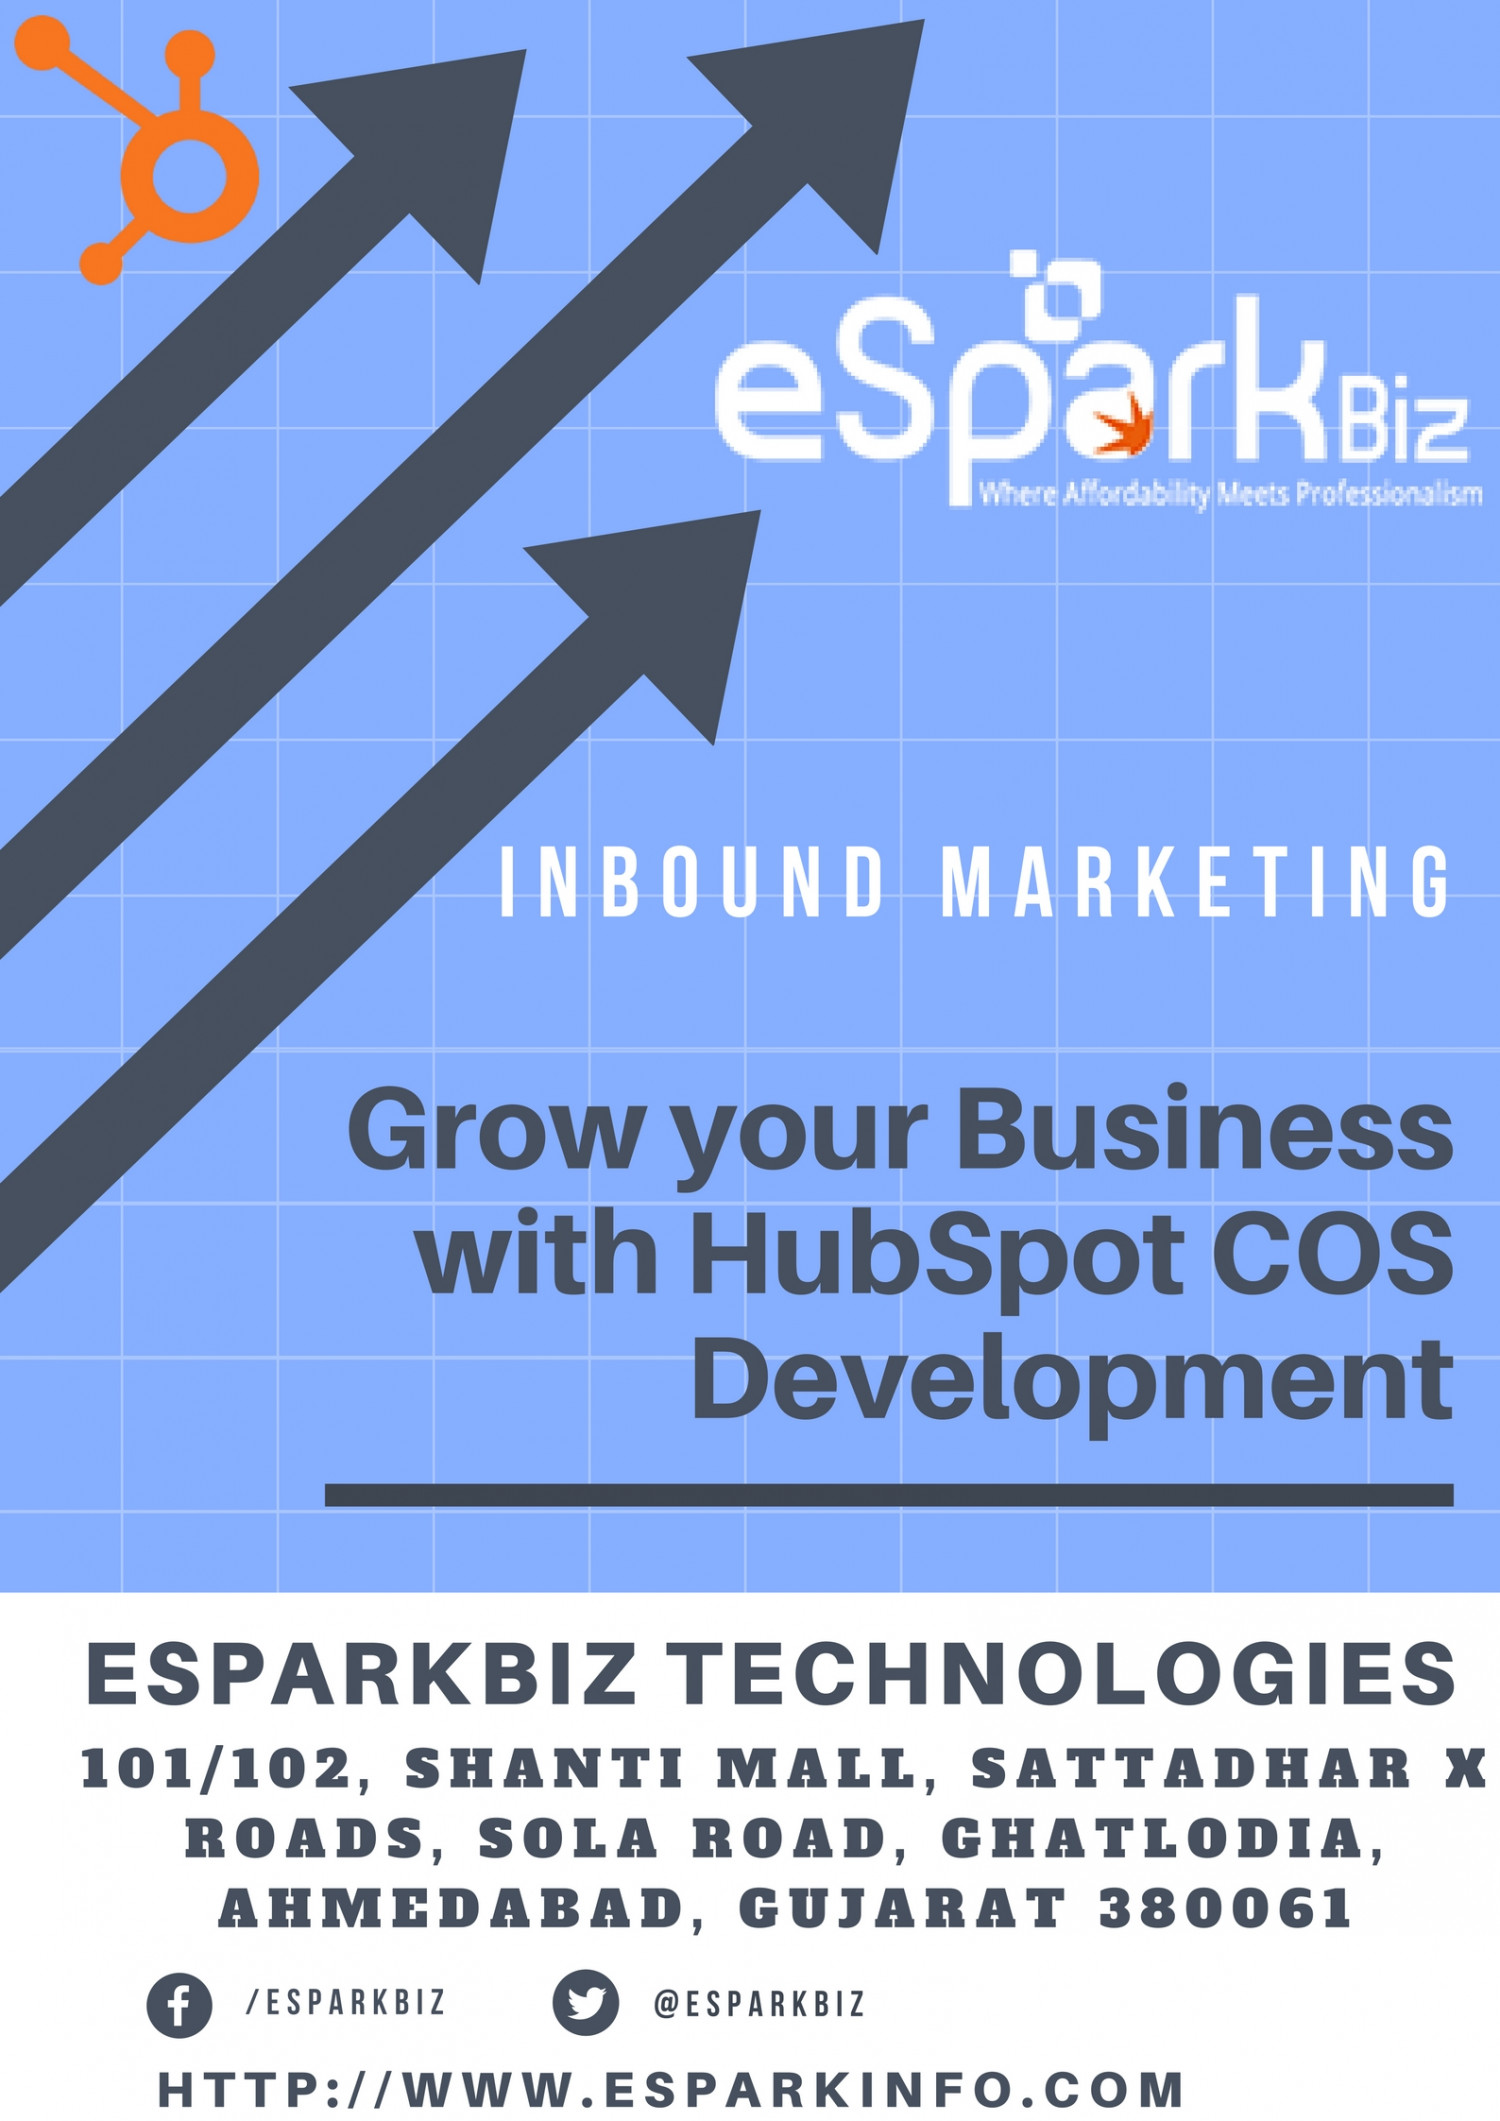 Grow your Business with HubSpot COS Development Infographic